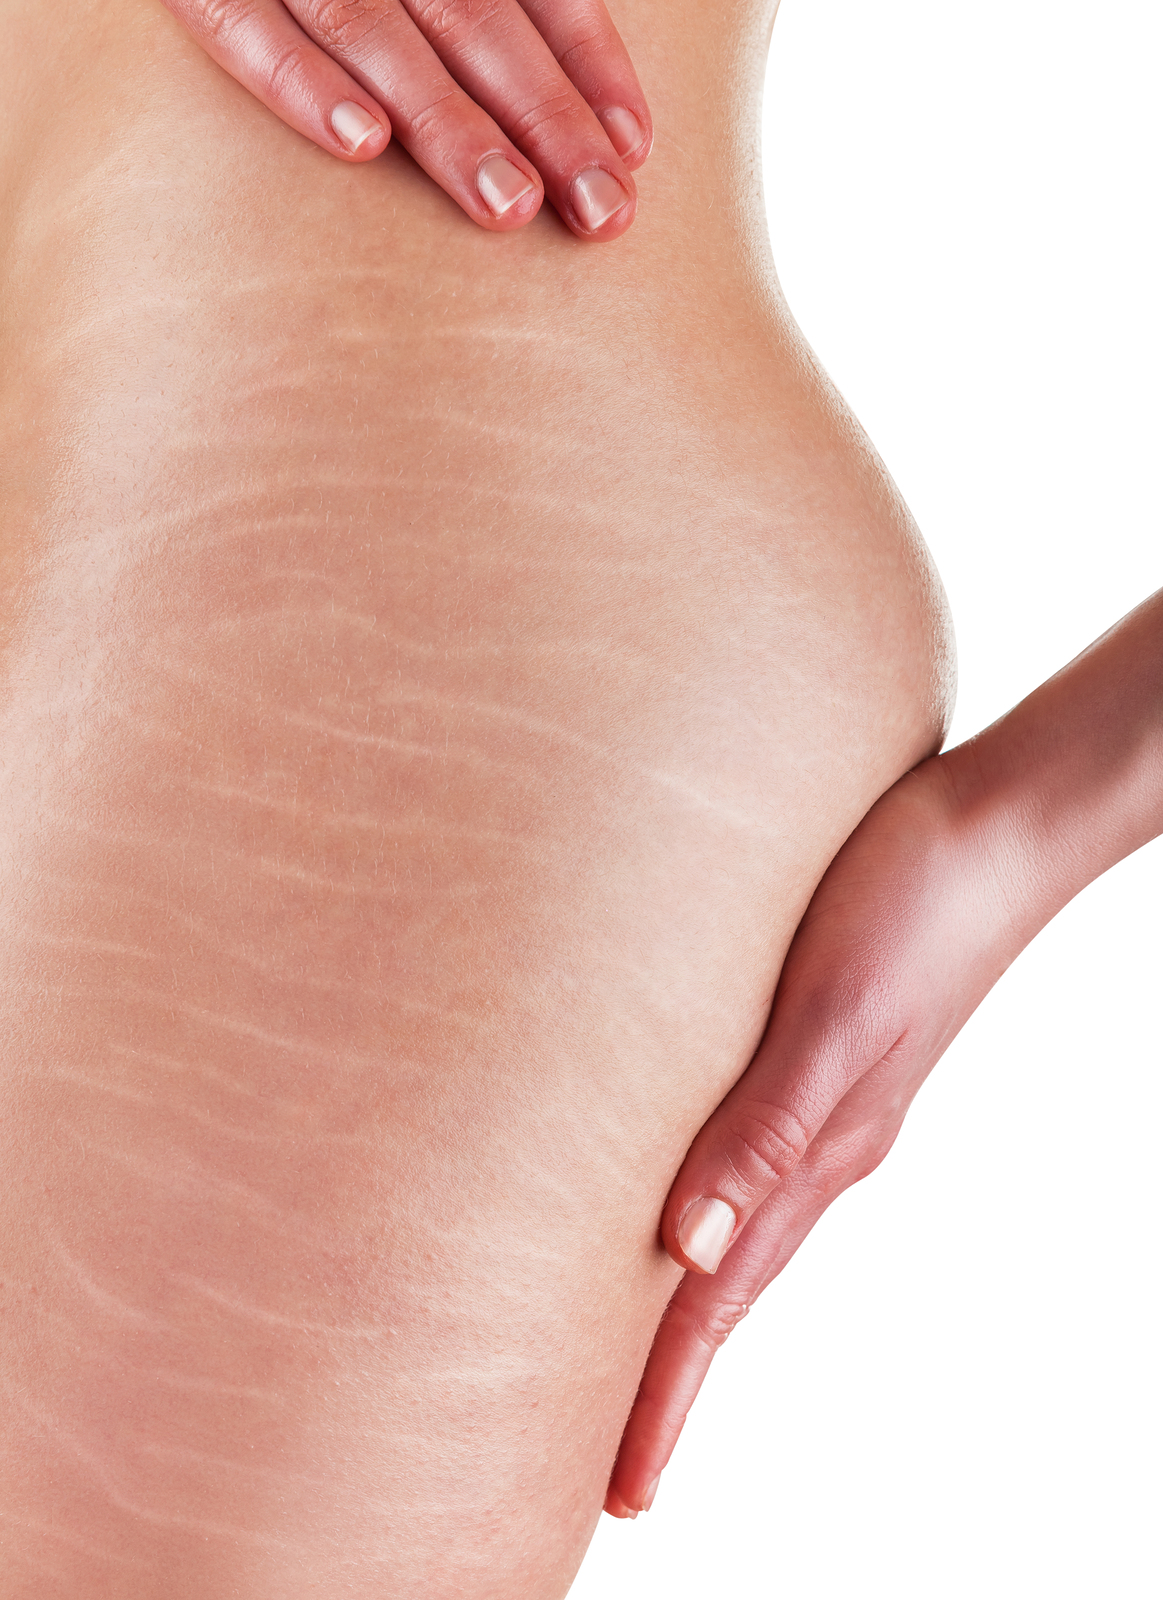 Stretch Marks Service Photo5